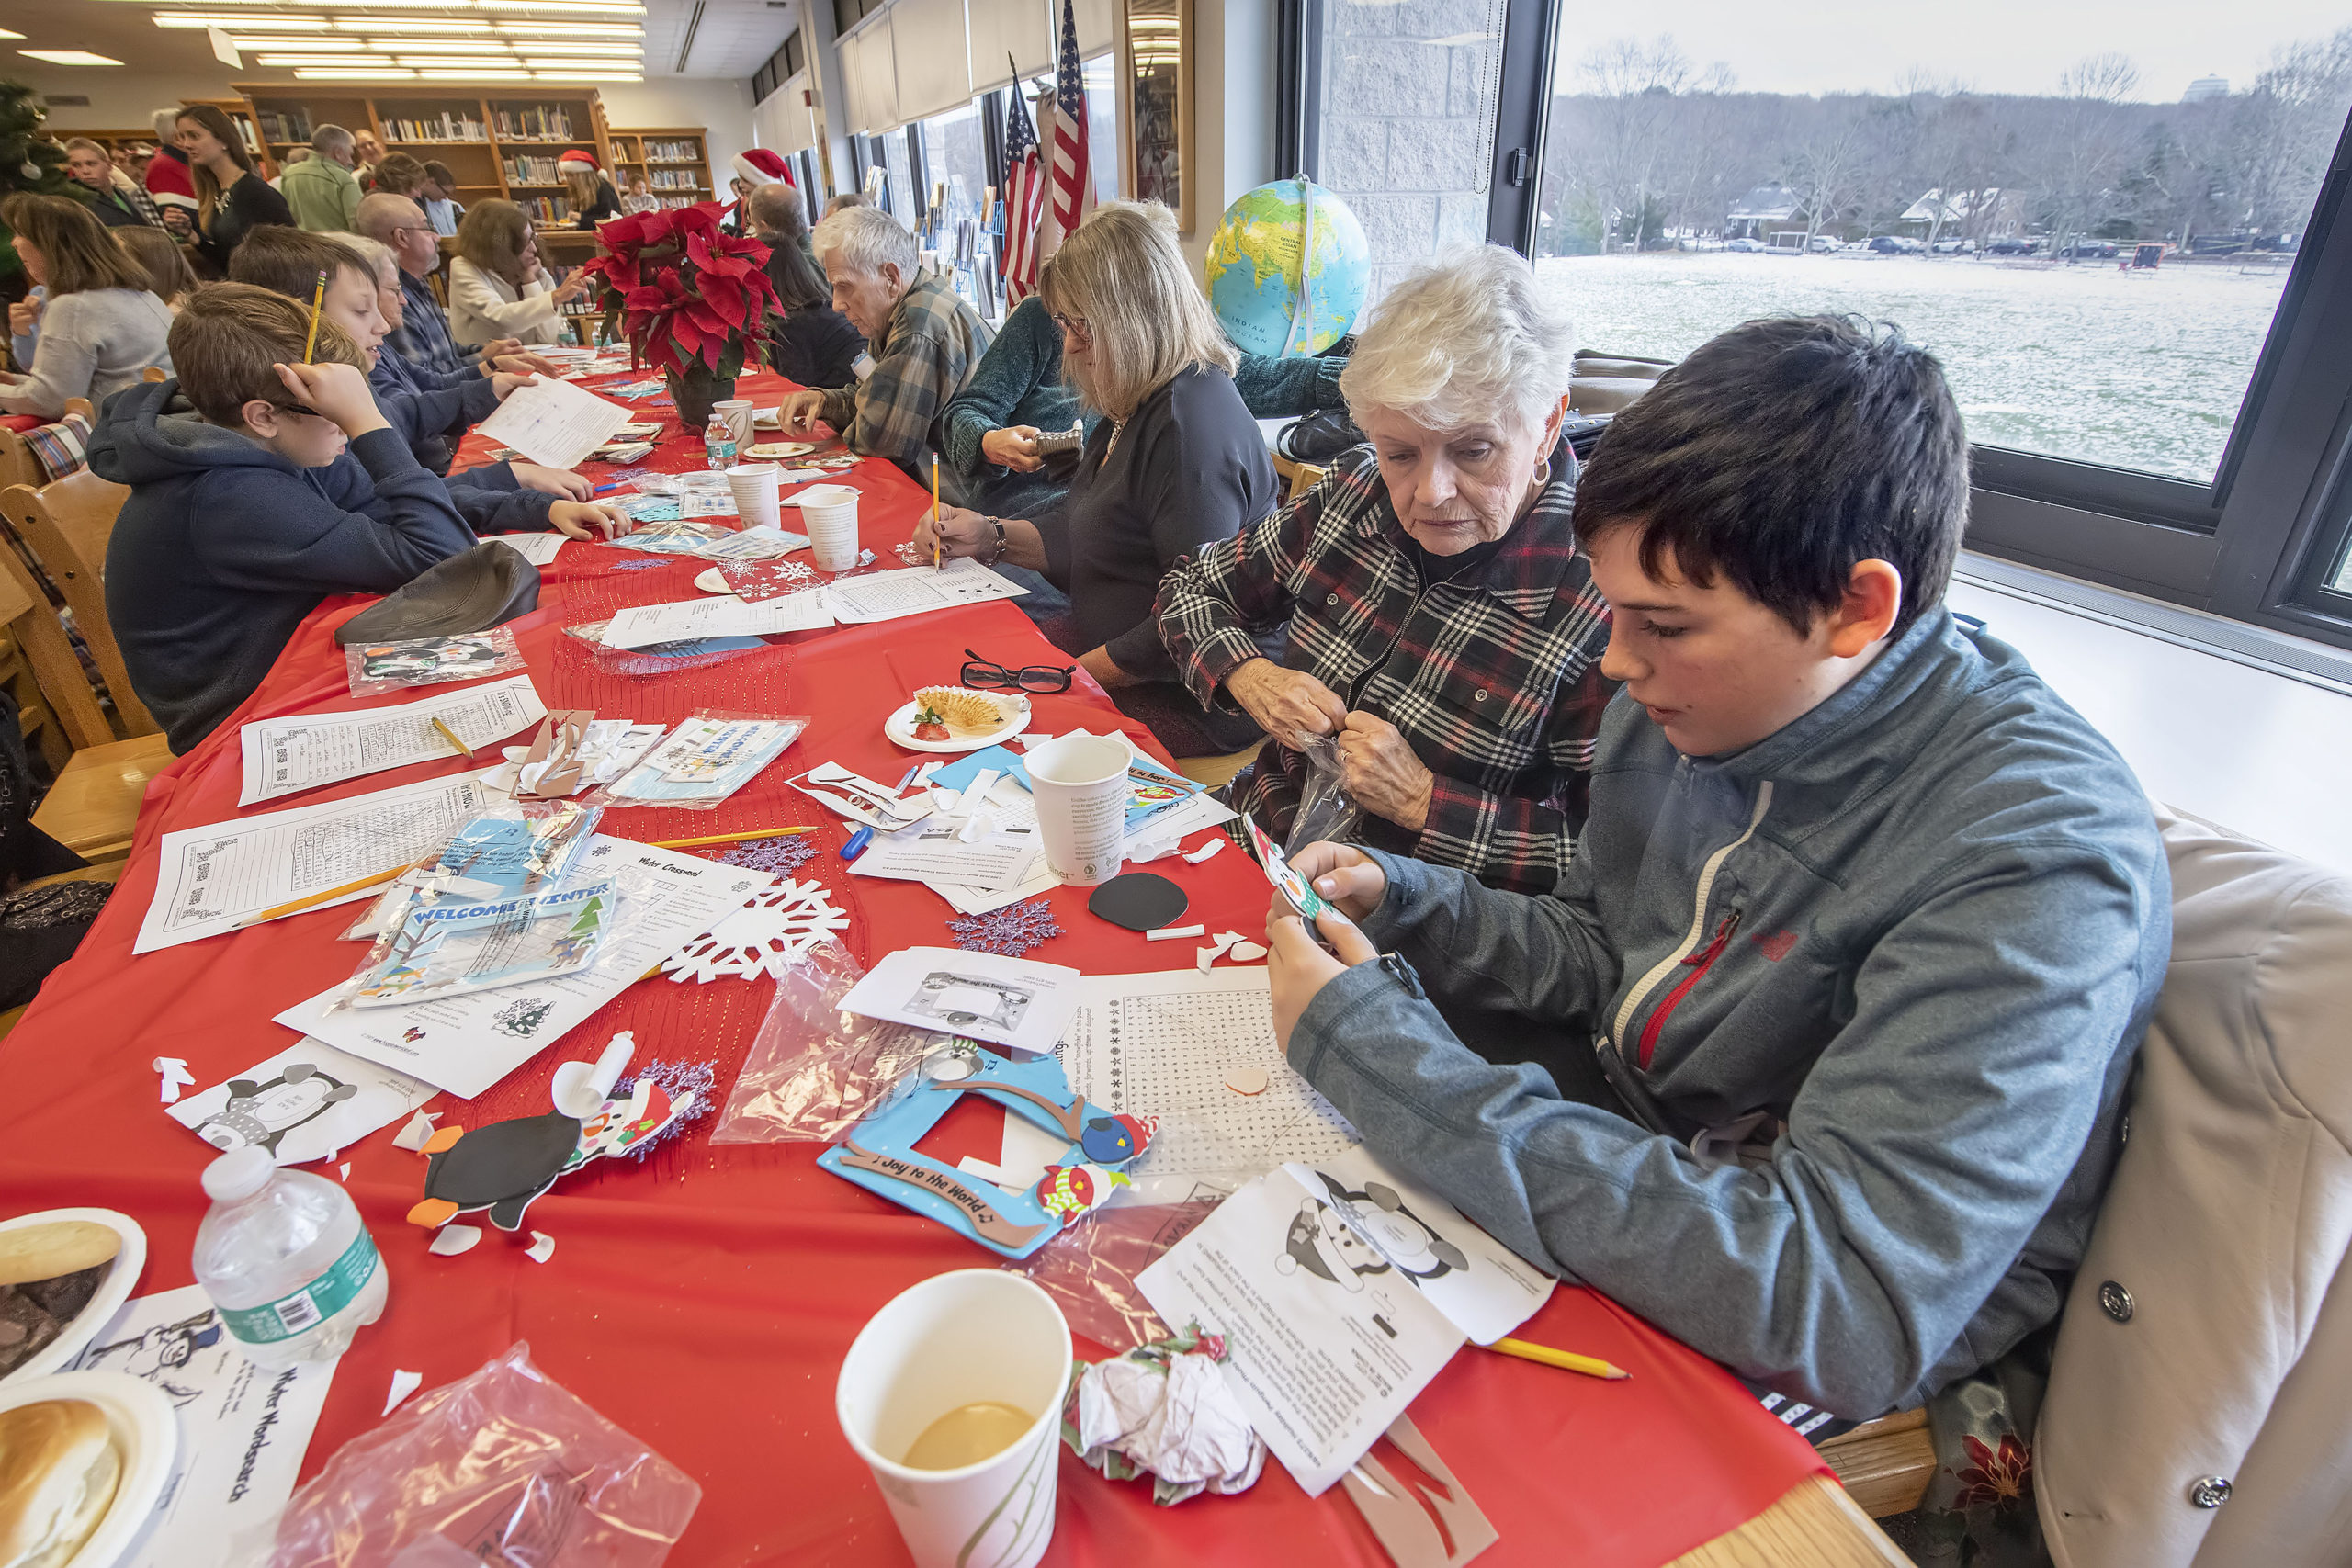 Patrick Caufield works on making a picture frame with his grandmother Gerri during the Pierson Middle School Snowflake Tea that was held in the Pierson High School library on Friday, December 13.   MICHAEL HELLER